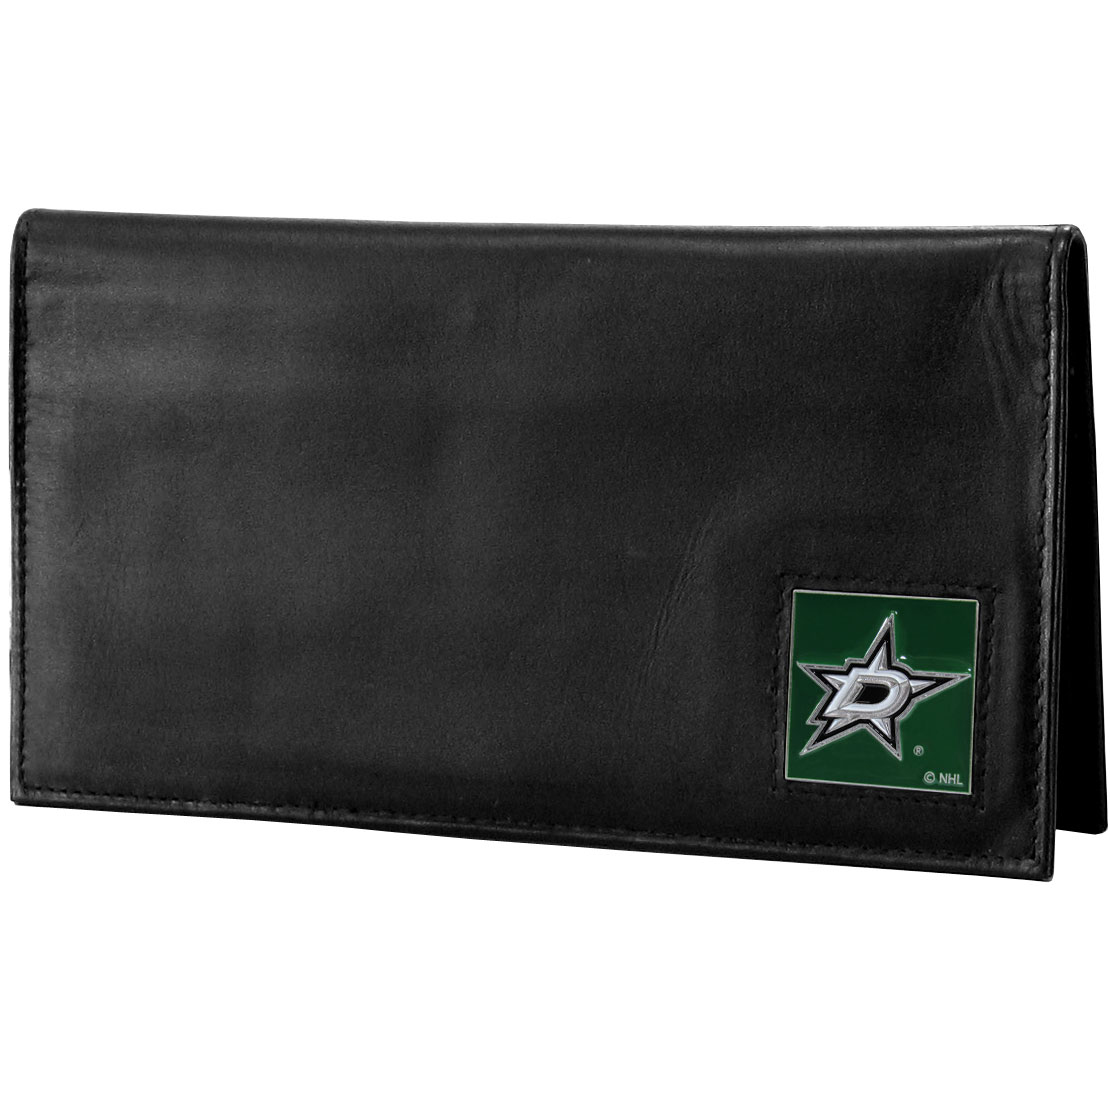 Dallas Stars™ Deluxe Leather Checkbook Cover - Our officially licensed checkbook cover is made of high quality leather and includes a card holder, clear ID window, and inside zipper pocket for added storage. Fully cast and enameled Dallas Stars™ team emblem on the front of the wallet.